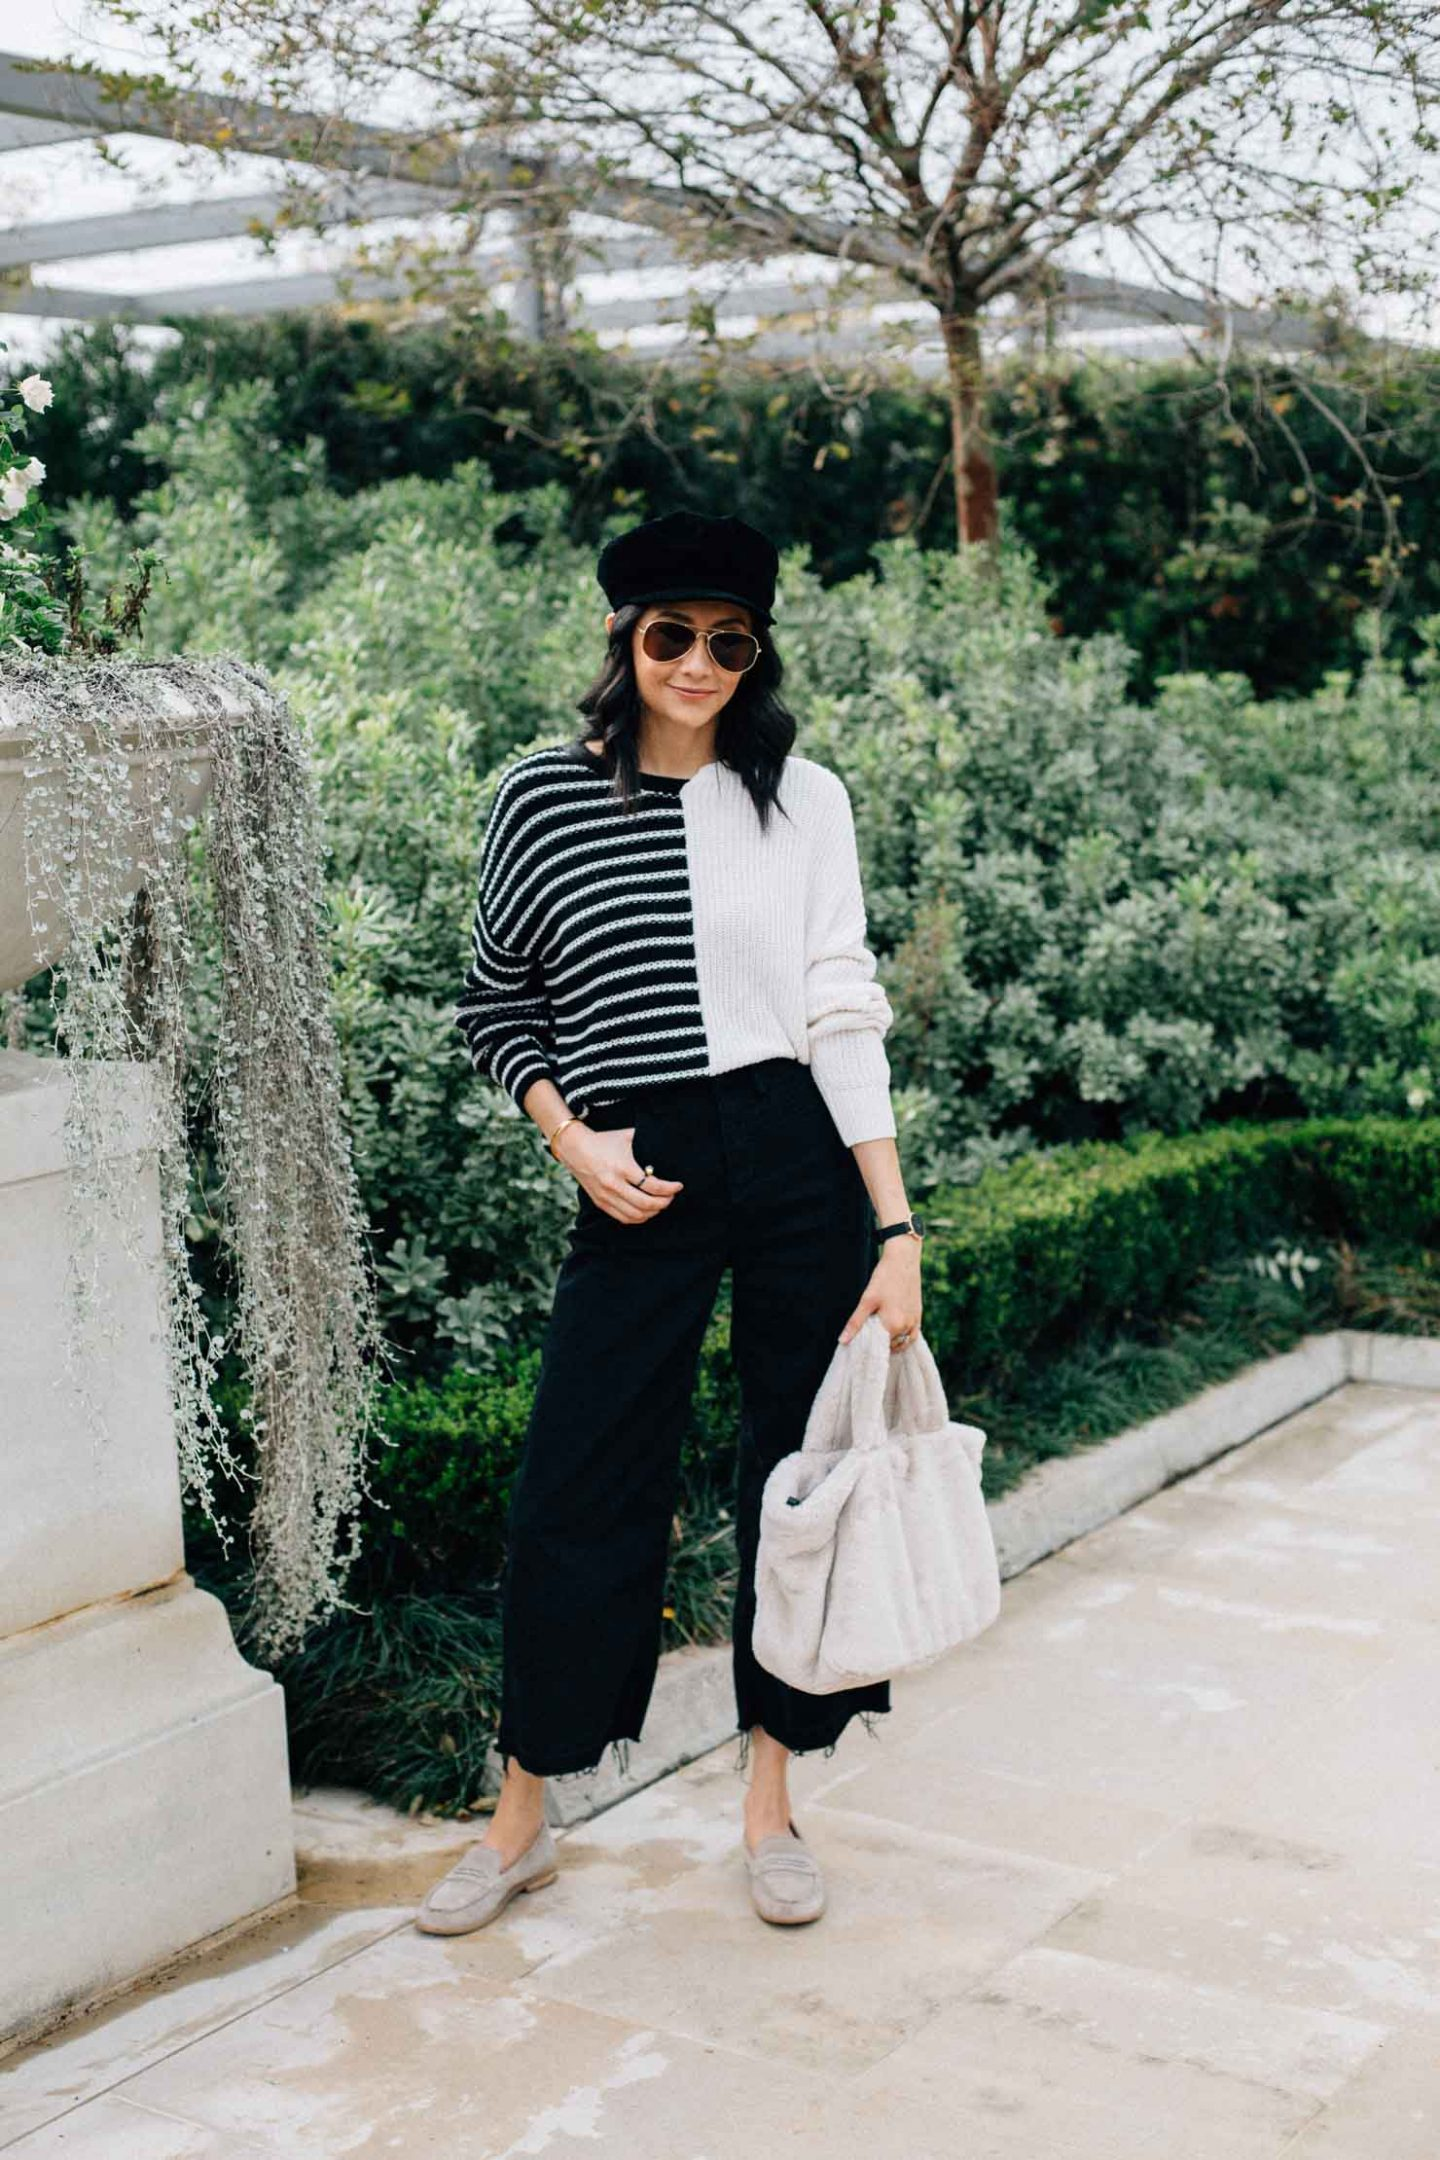 Lilly Beltran of Daily Craving blog wearing an effortless look with black wide leg denim, a color block sweater, baker boy cap & faux fur bag